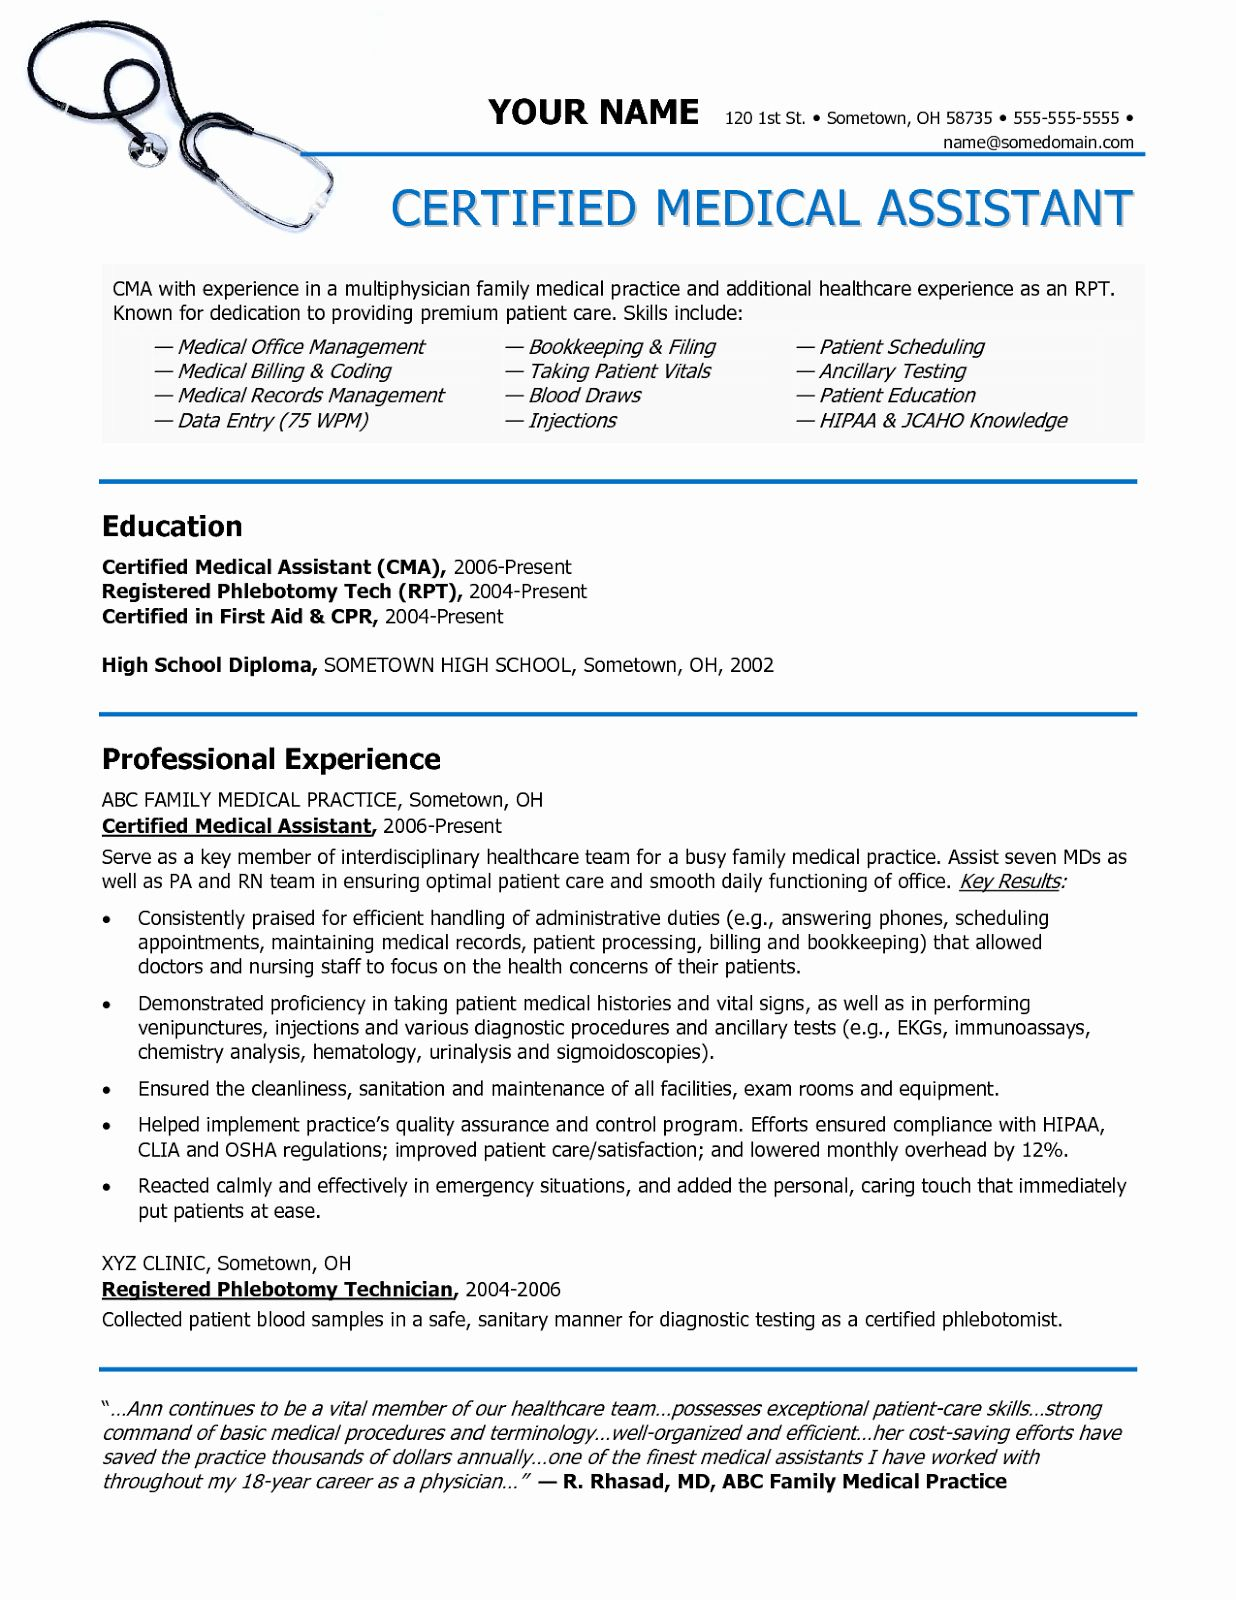 Medical assistant Resume Template Elegant Sample A Medical assistant Resume